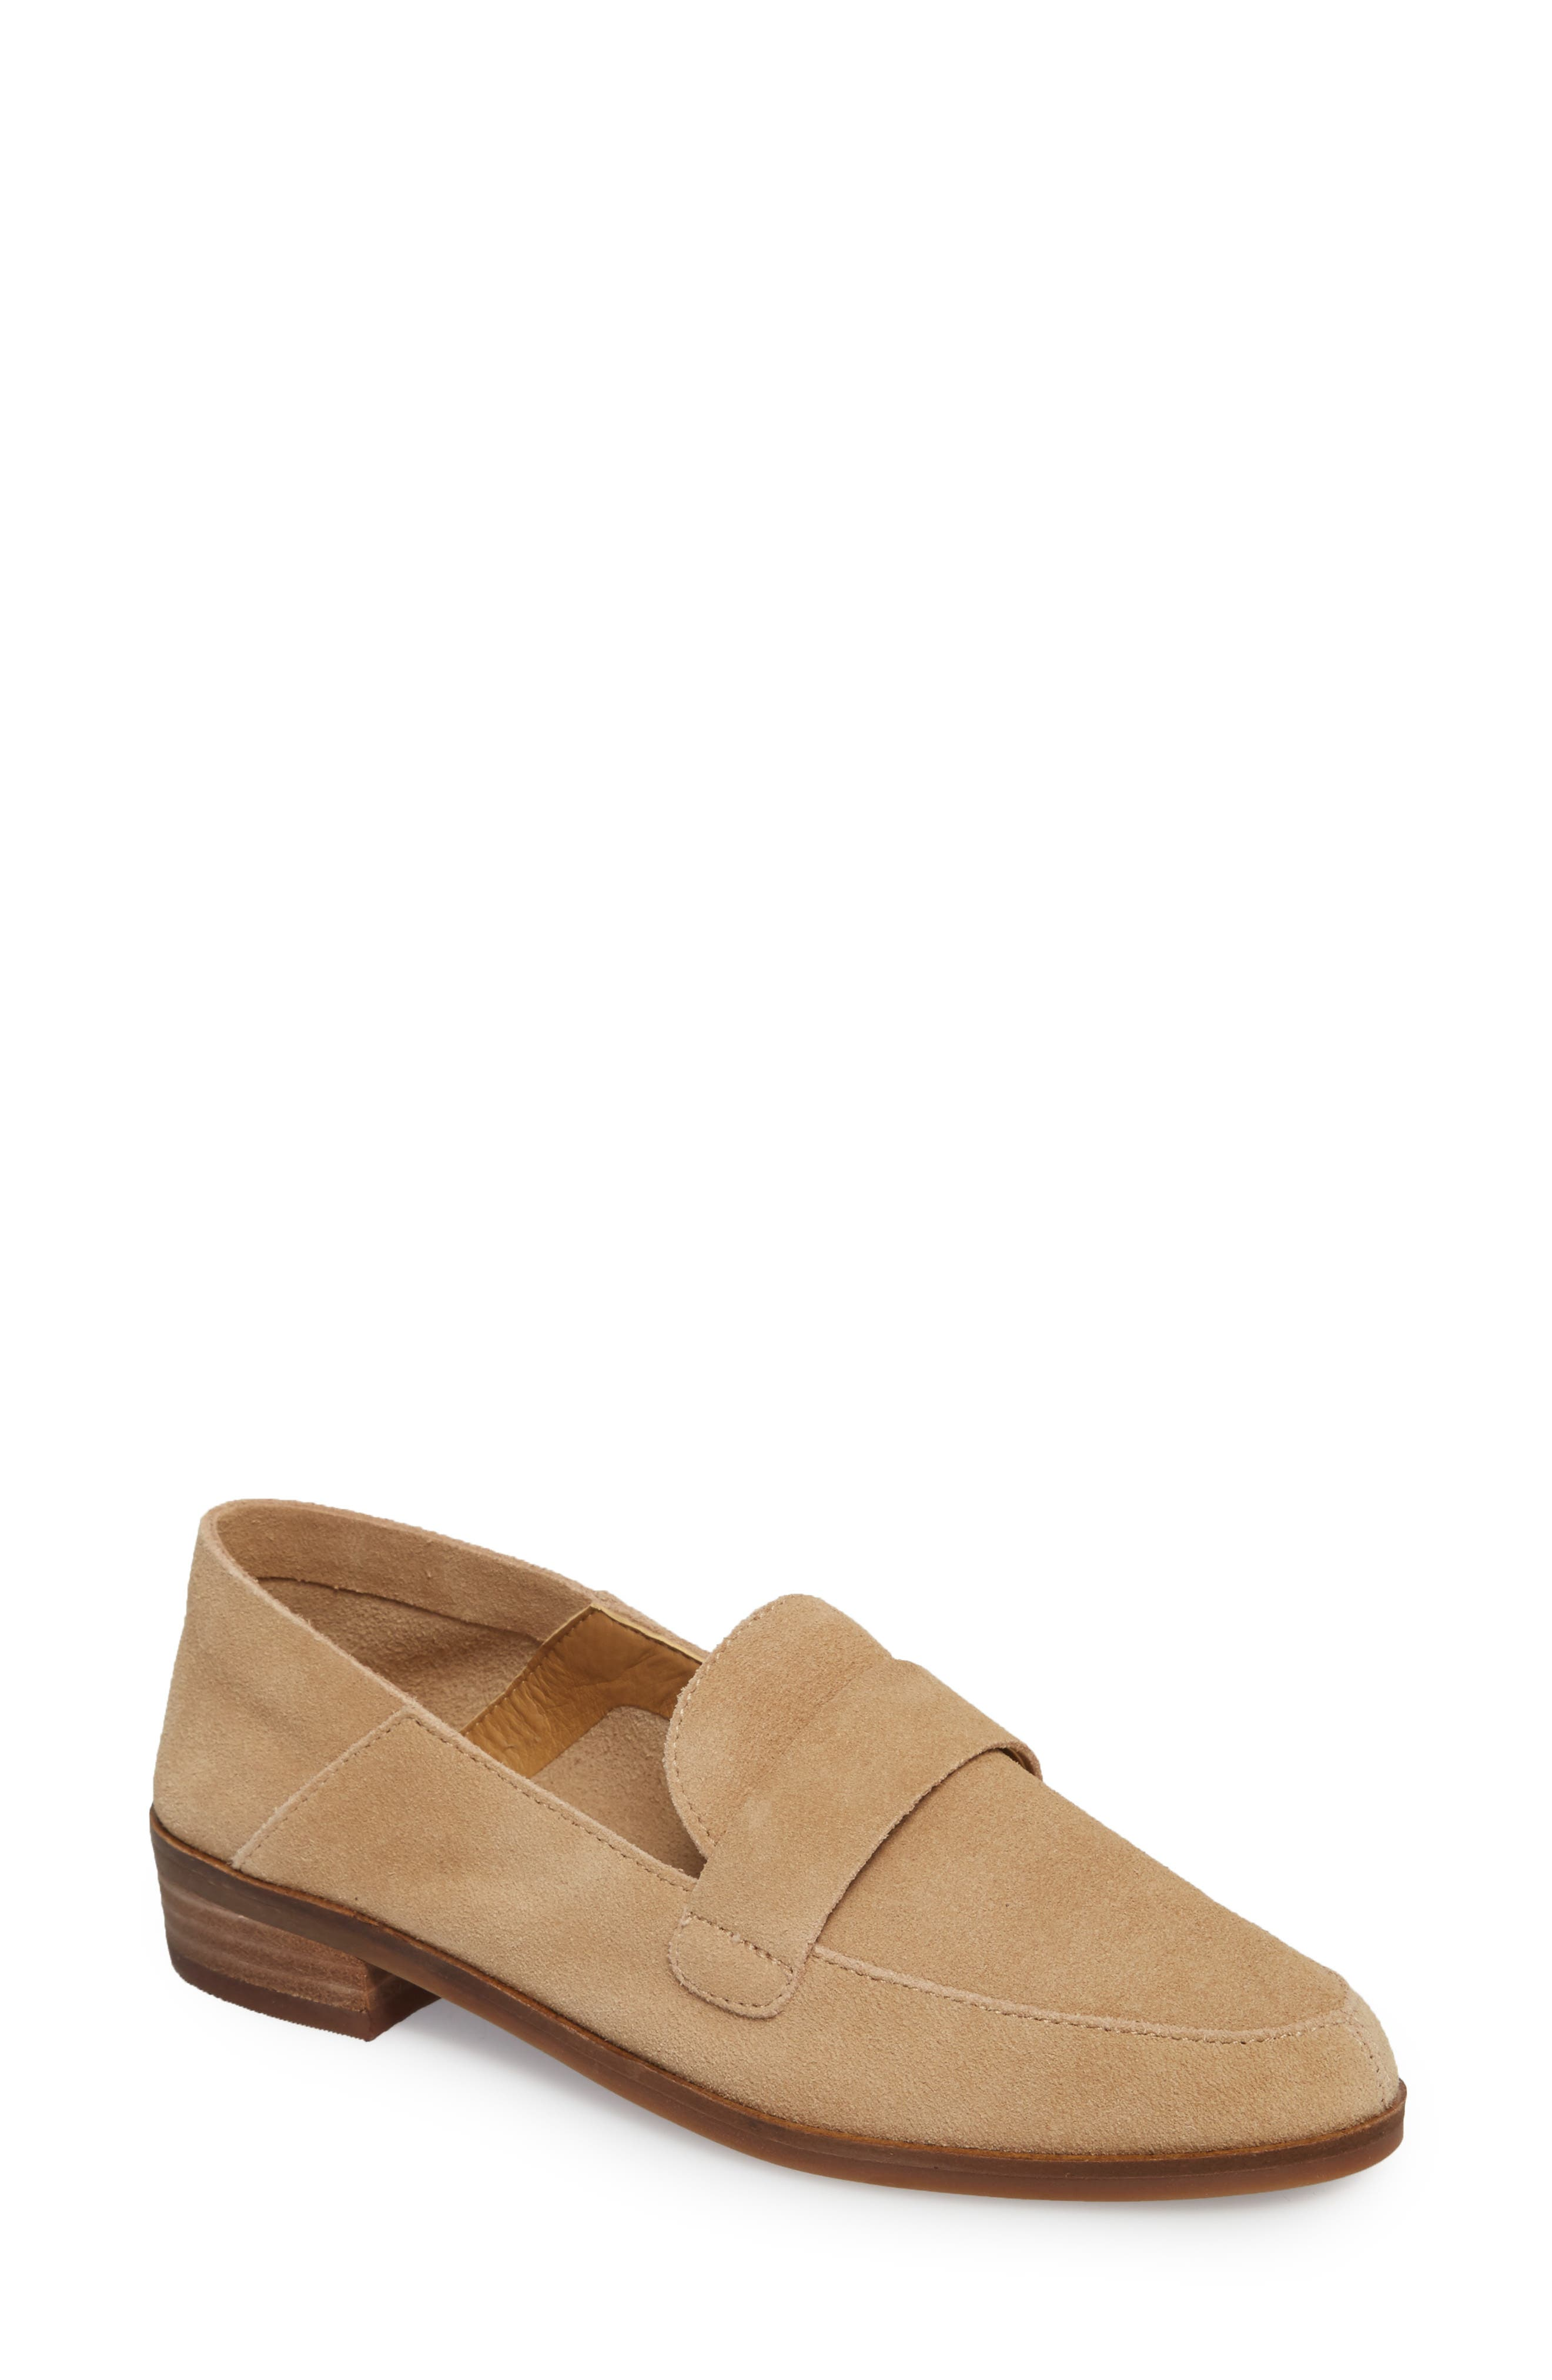 Chennie Loafer,                             Main thumbnail 2, color,